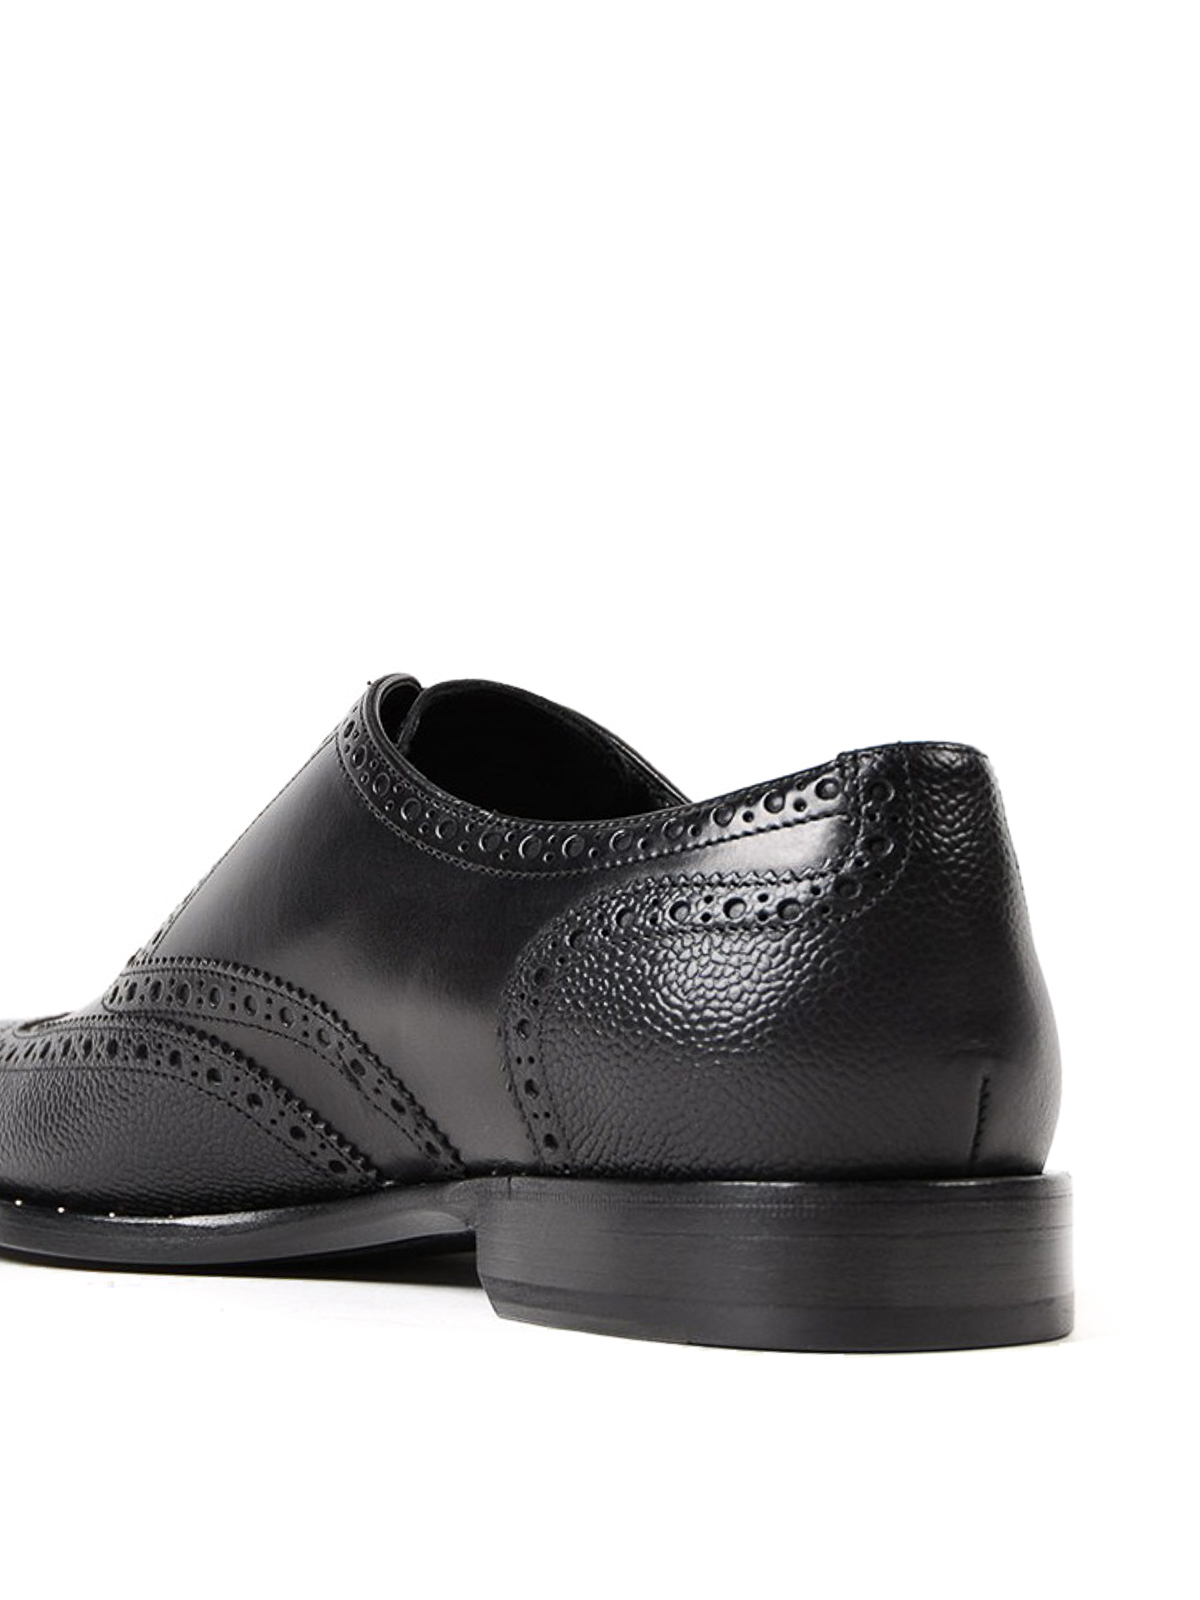 28517e1b9dd iKRIX DOLCE & GABBANA: classic shoes - Naples brogue Oxford shoes